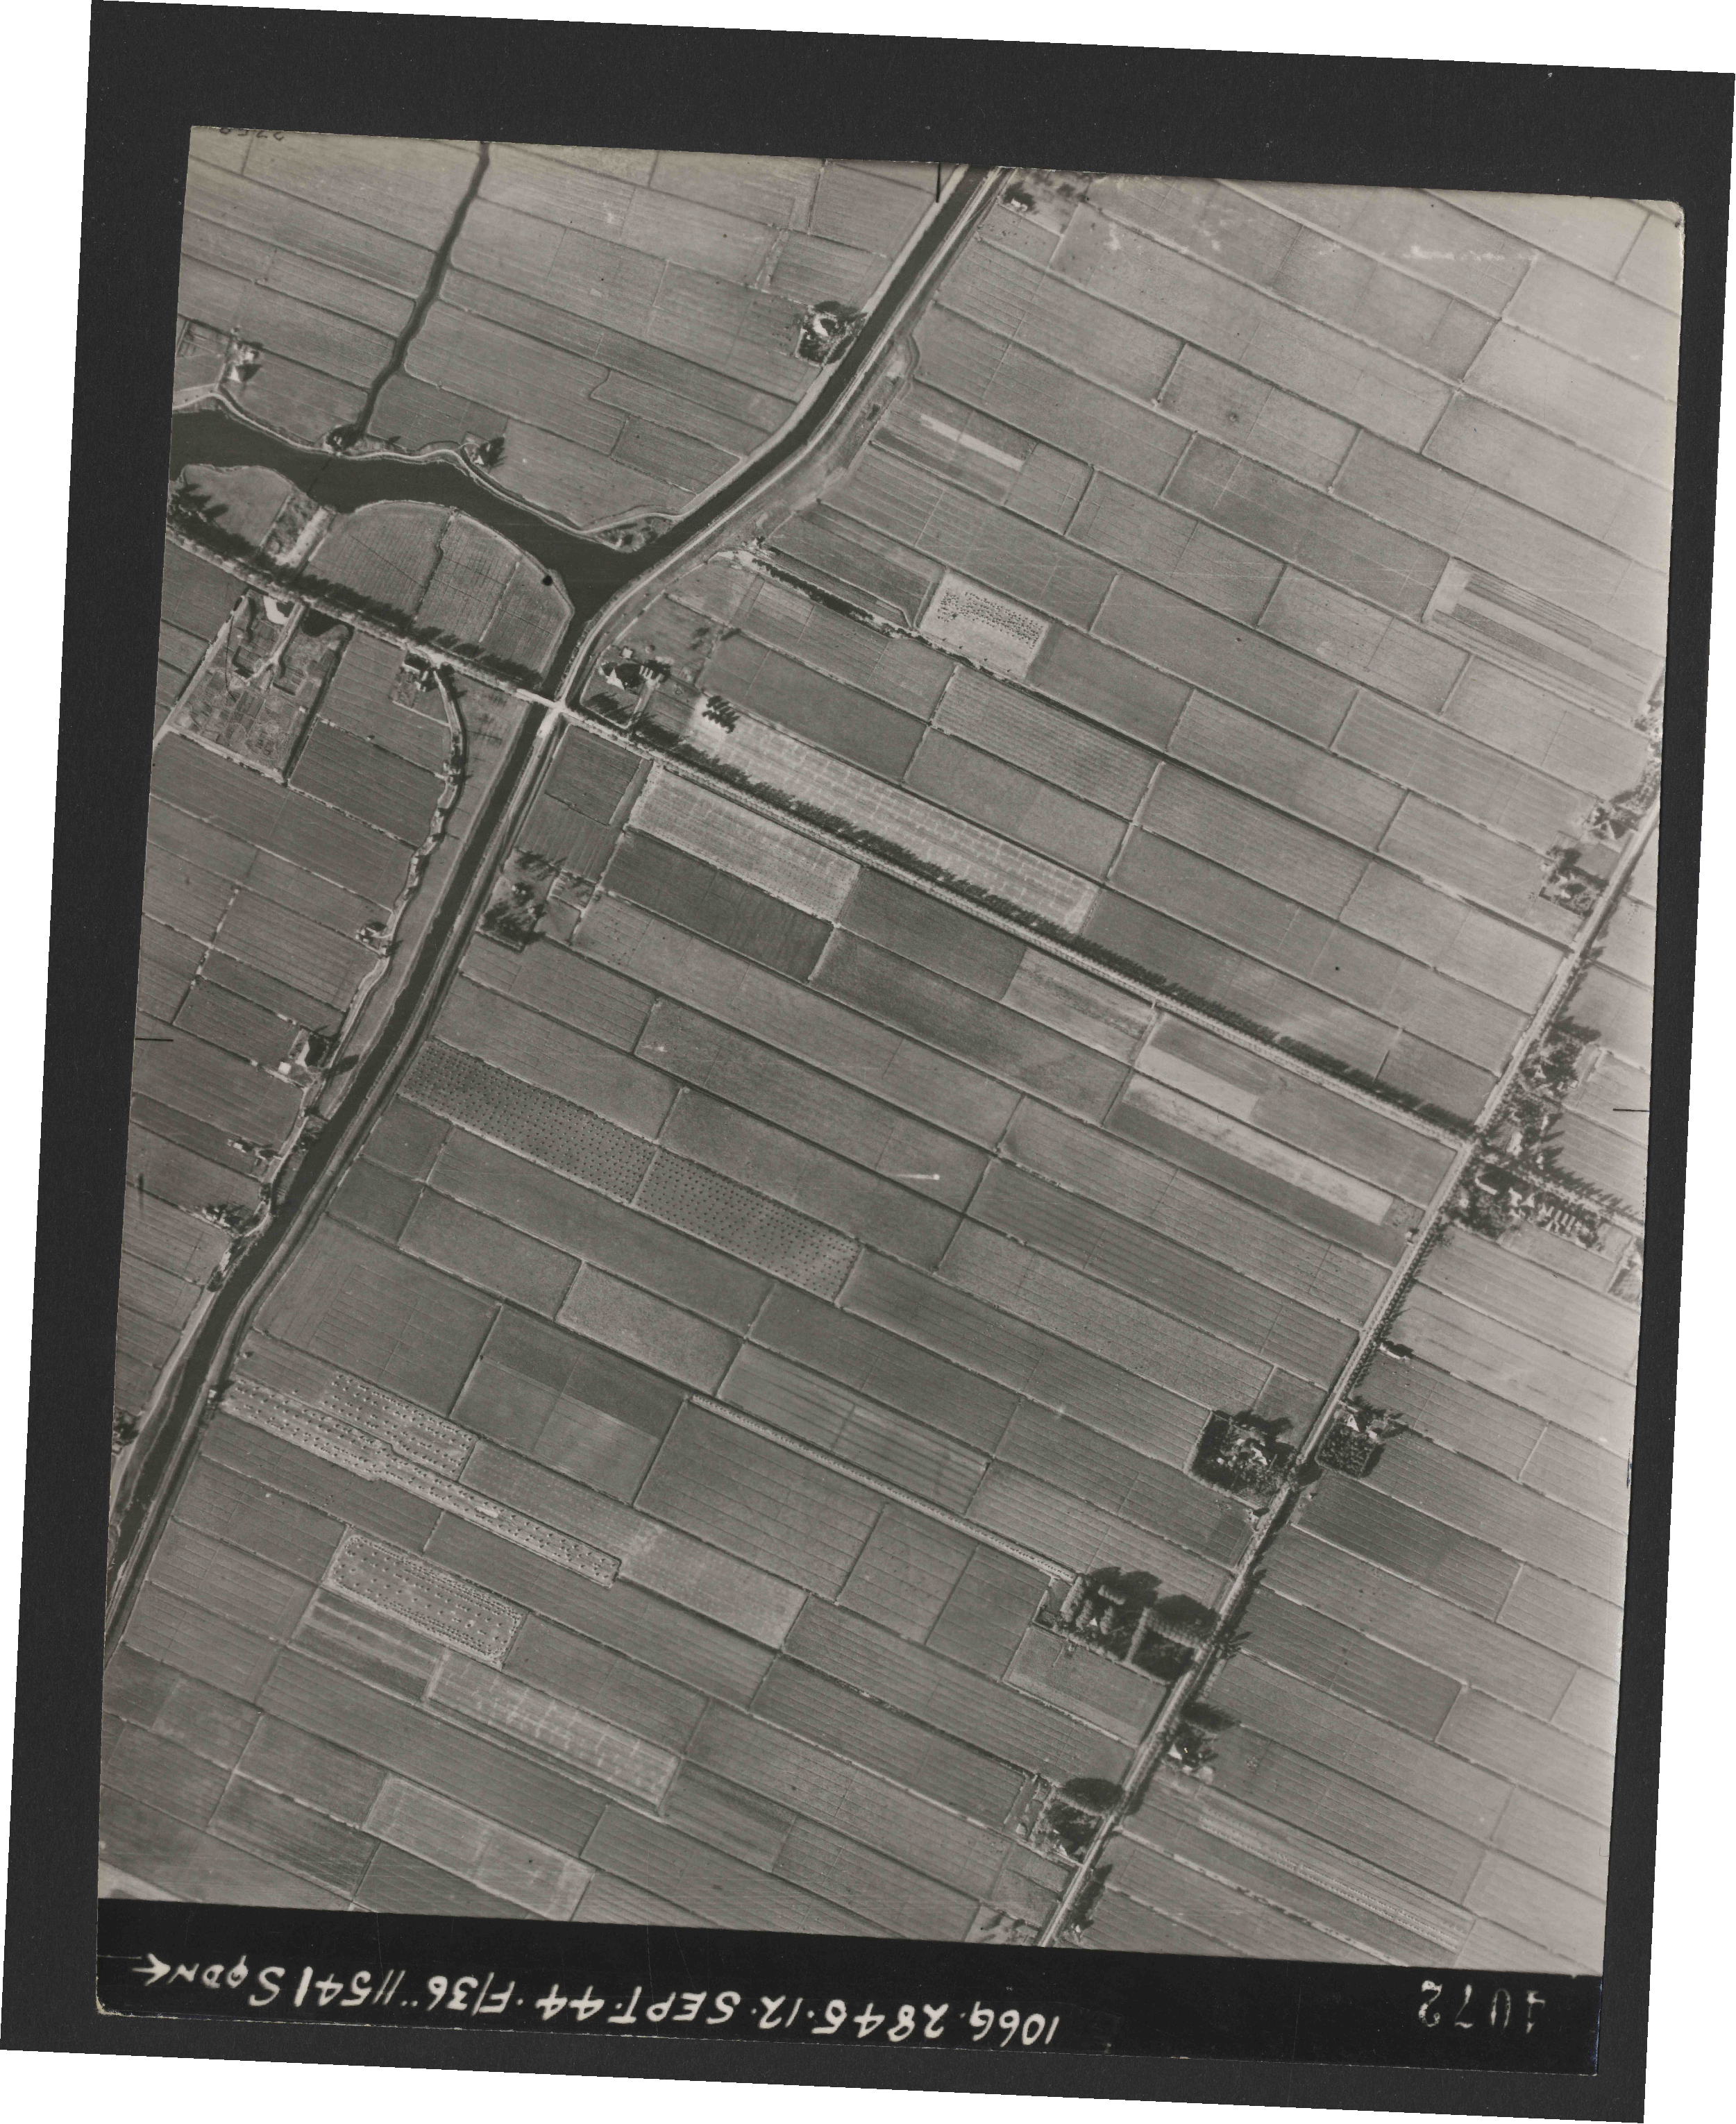 Collection RAF aerial photos 1940-1945 - flight 299, run 04, photo 4072